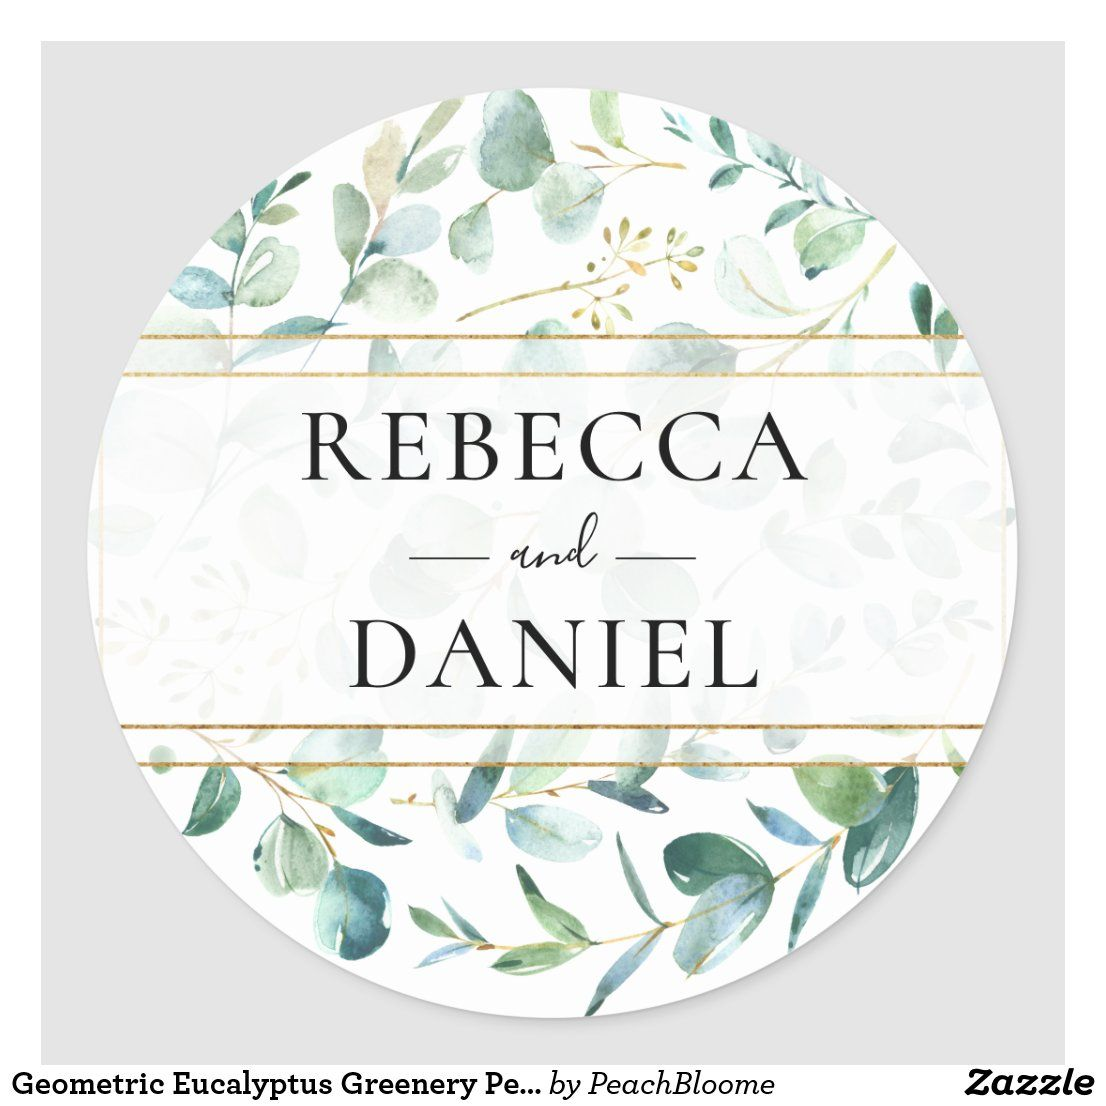 Geometric Eucalyptus Greenery Personalized Wedding Classic Round Sticker Zazzle Com In 2020 Wedding Classic Personalized Wedding Wedding Favor Stickers